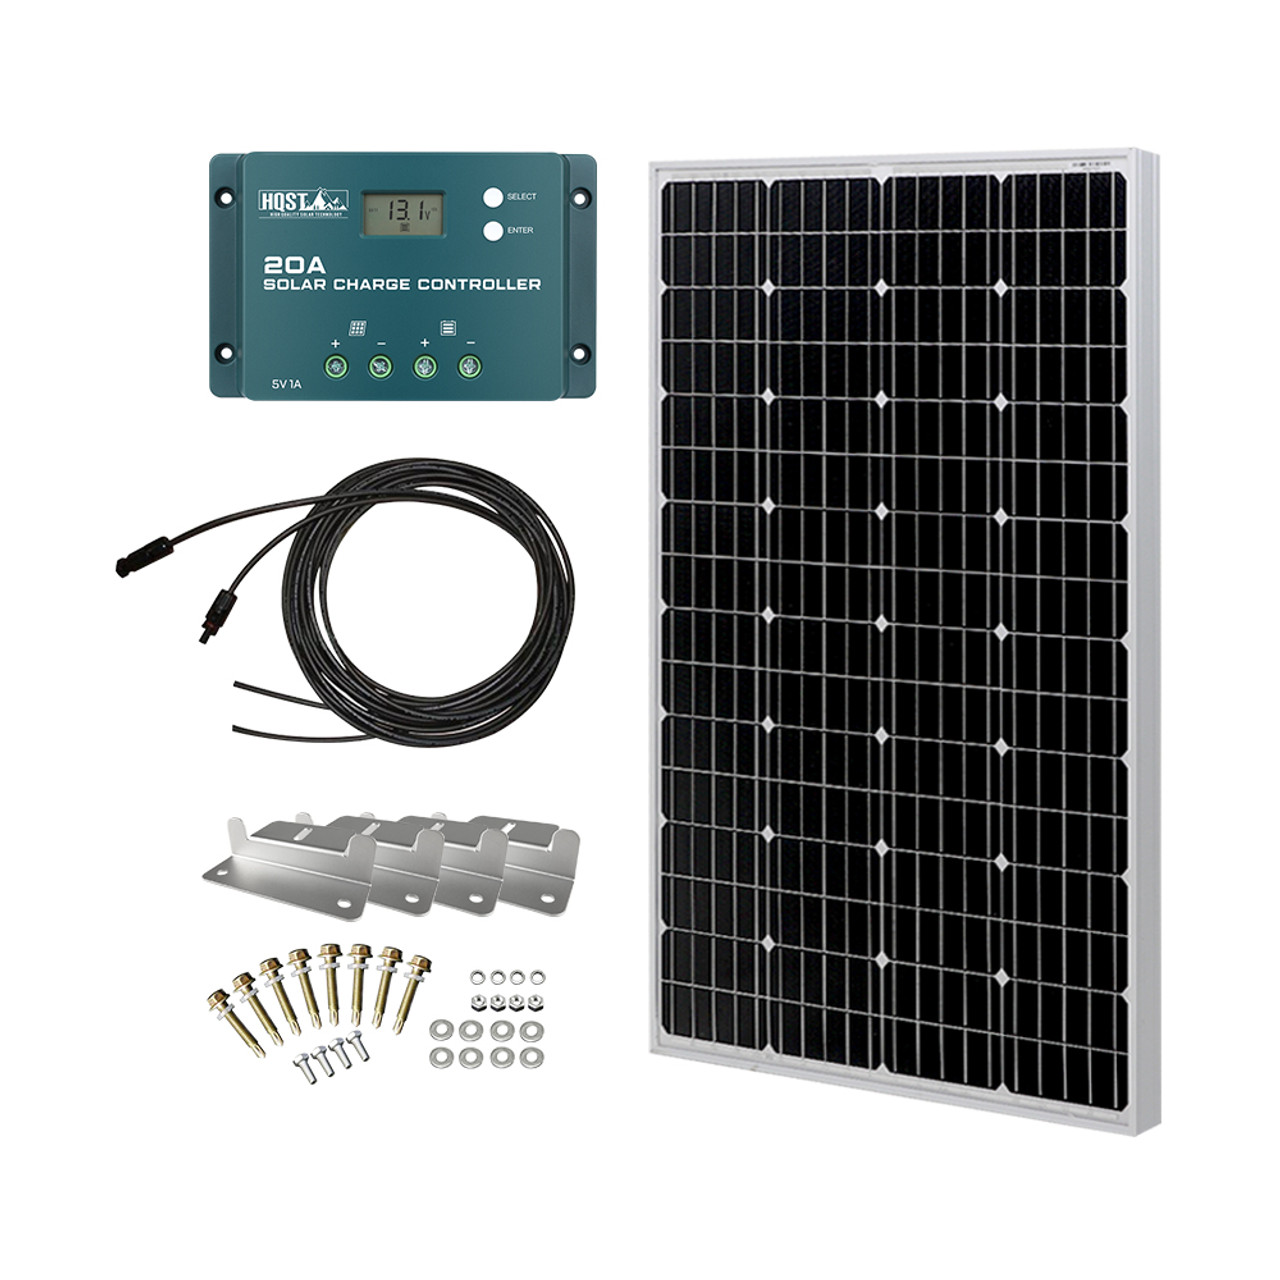 100 Watt 12 Volt Monocrystalline Solar Panel Kit with 20A PWM Charge Controller, Z Bracket, 20FT 12AWG Cable